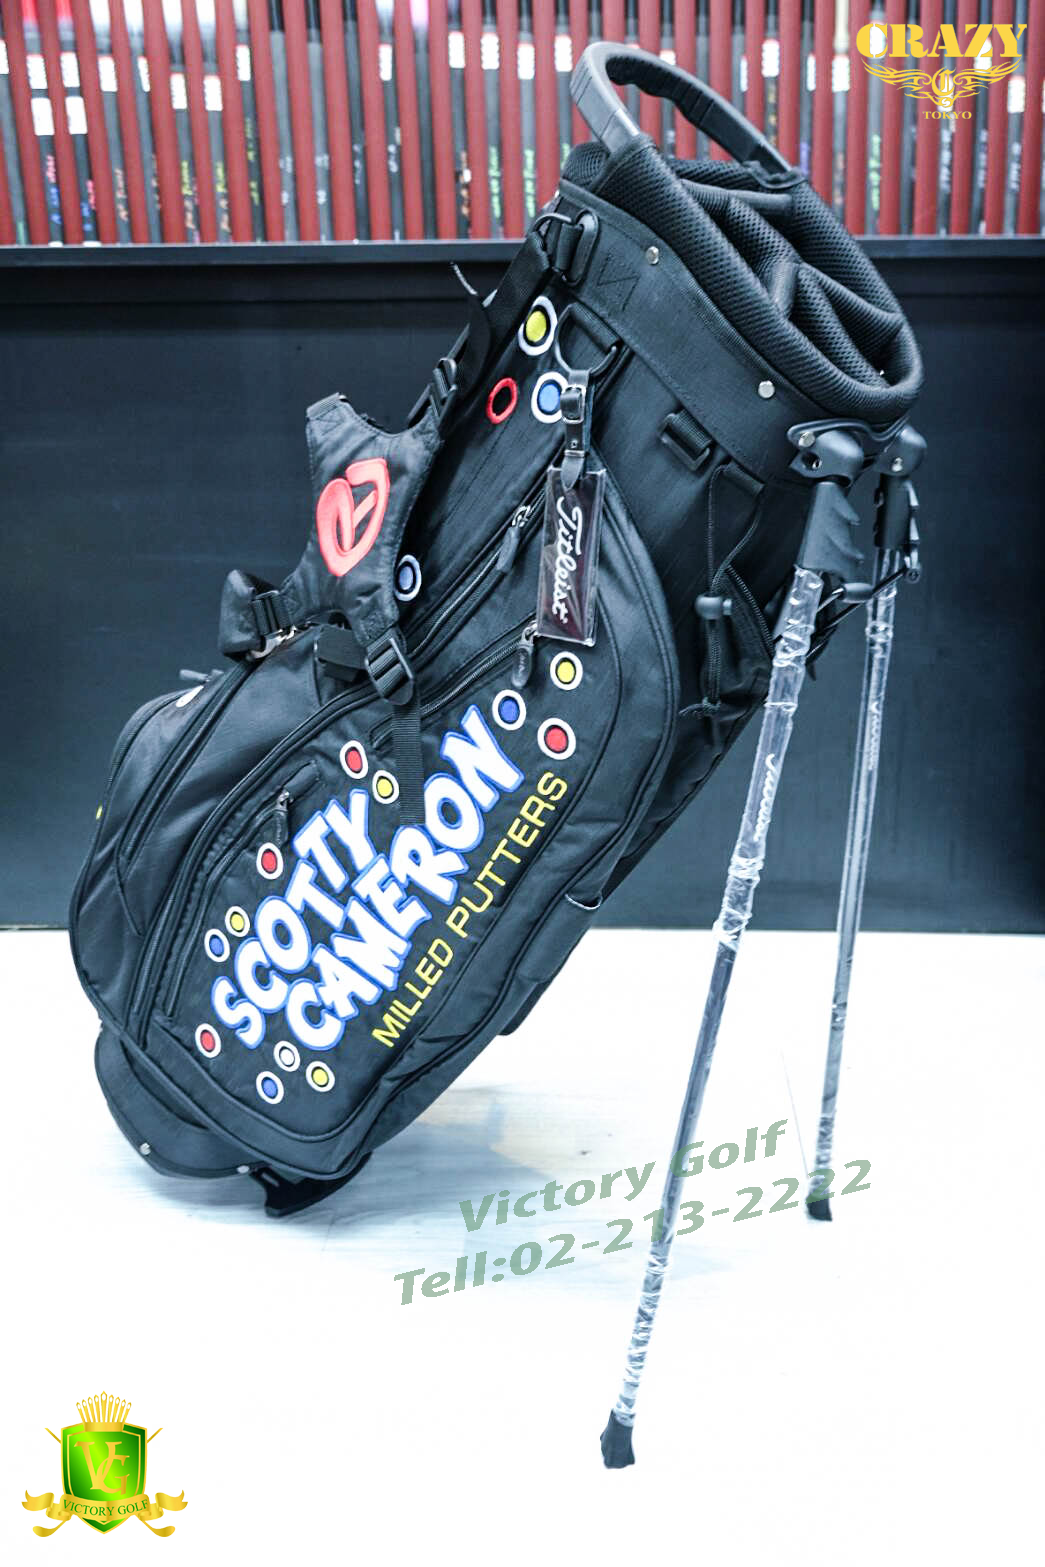 Scotty Cameron GOLF BAG (Black)